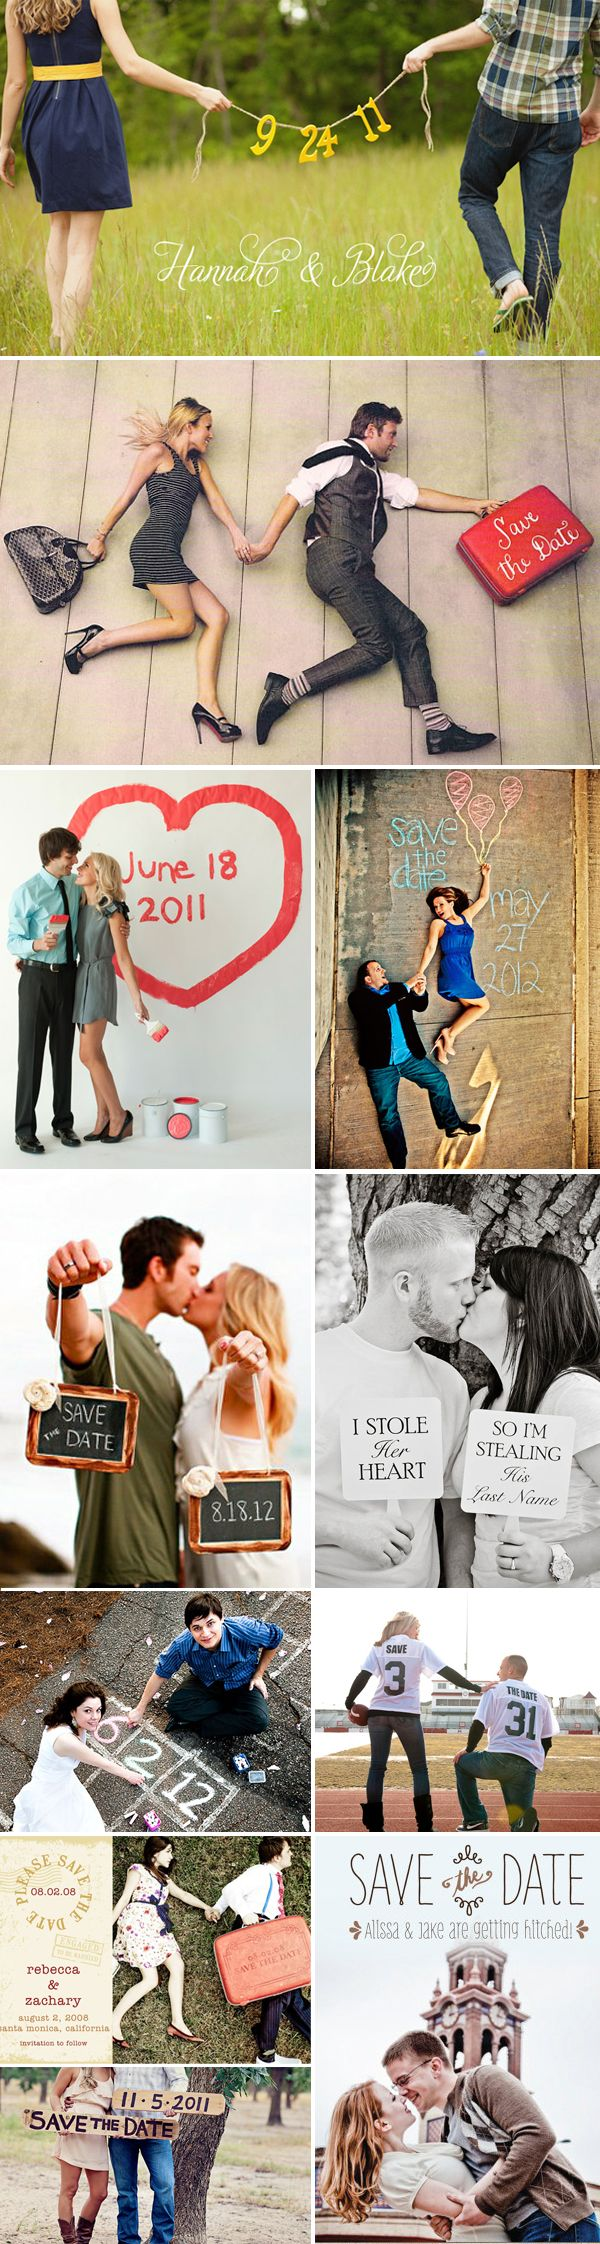 Fun save-the-date photo ideas!